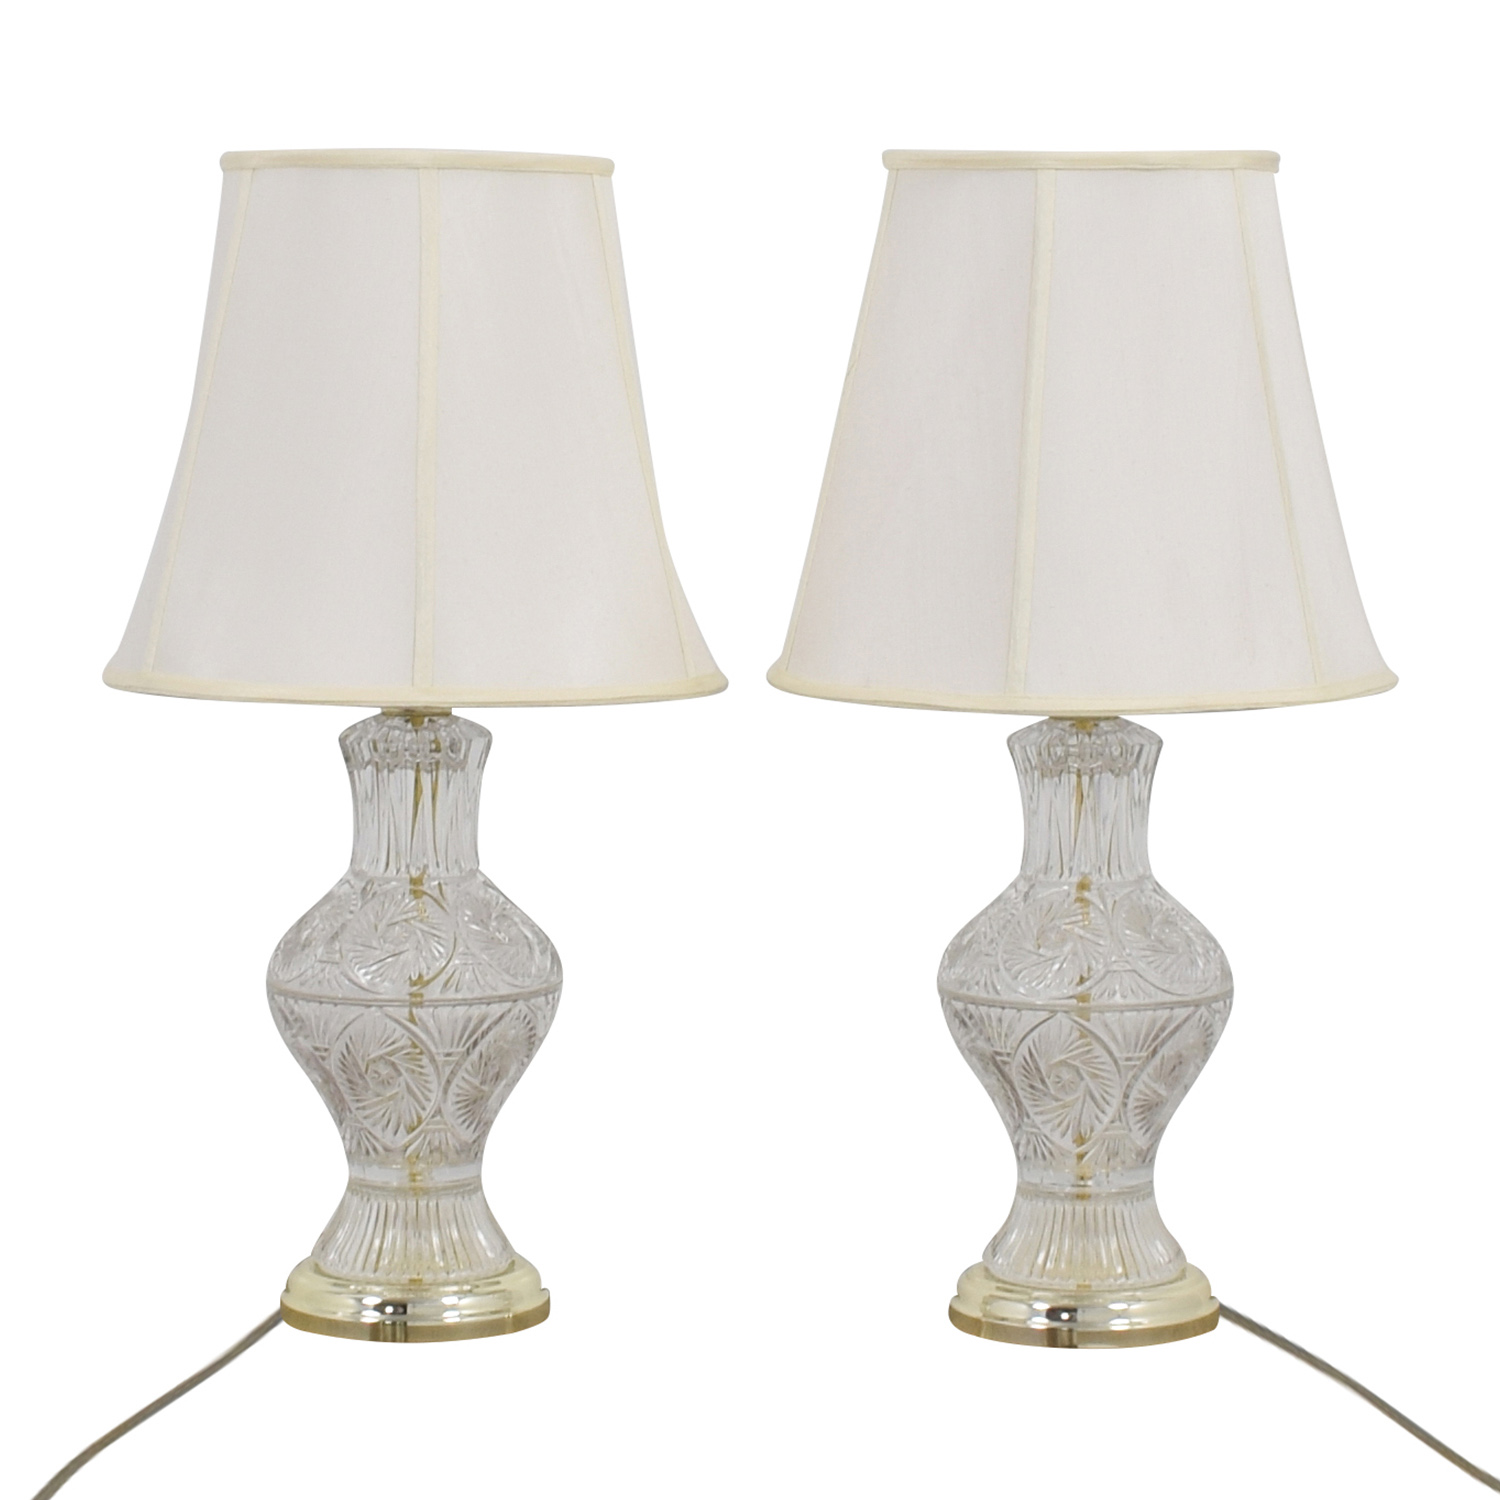 78 Off Cut Glass Lamps With Glass Base Decor